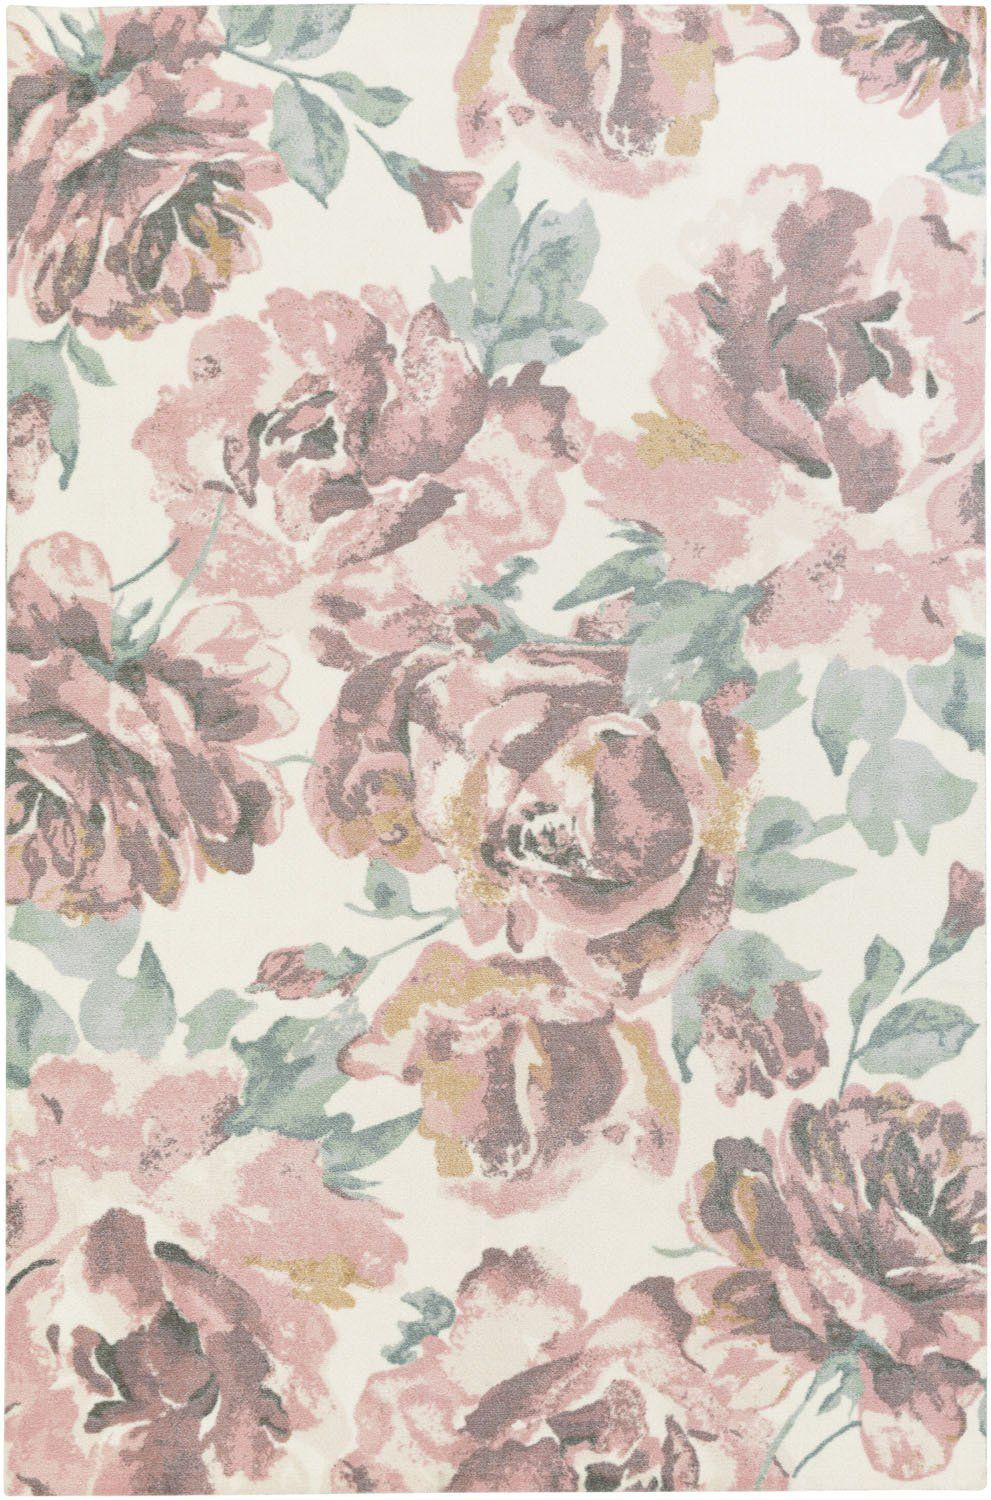 Madeline mdl 6166 pink floral rug floral rug room and walls the mdl 6166 pink area rug from the collection madeline features a 028 inch high mightylinksfo